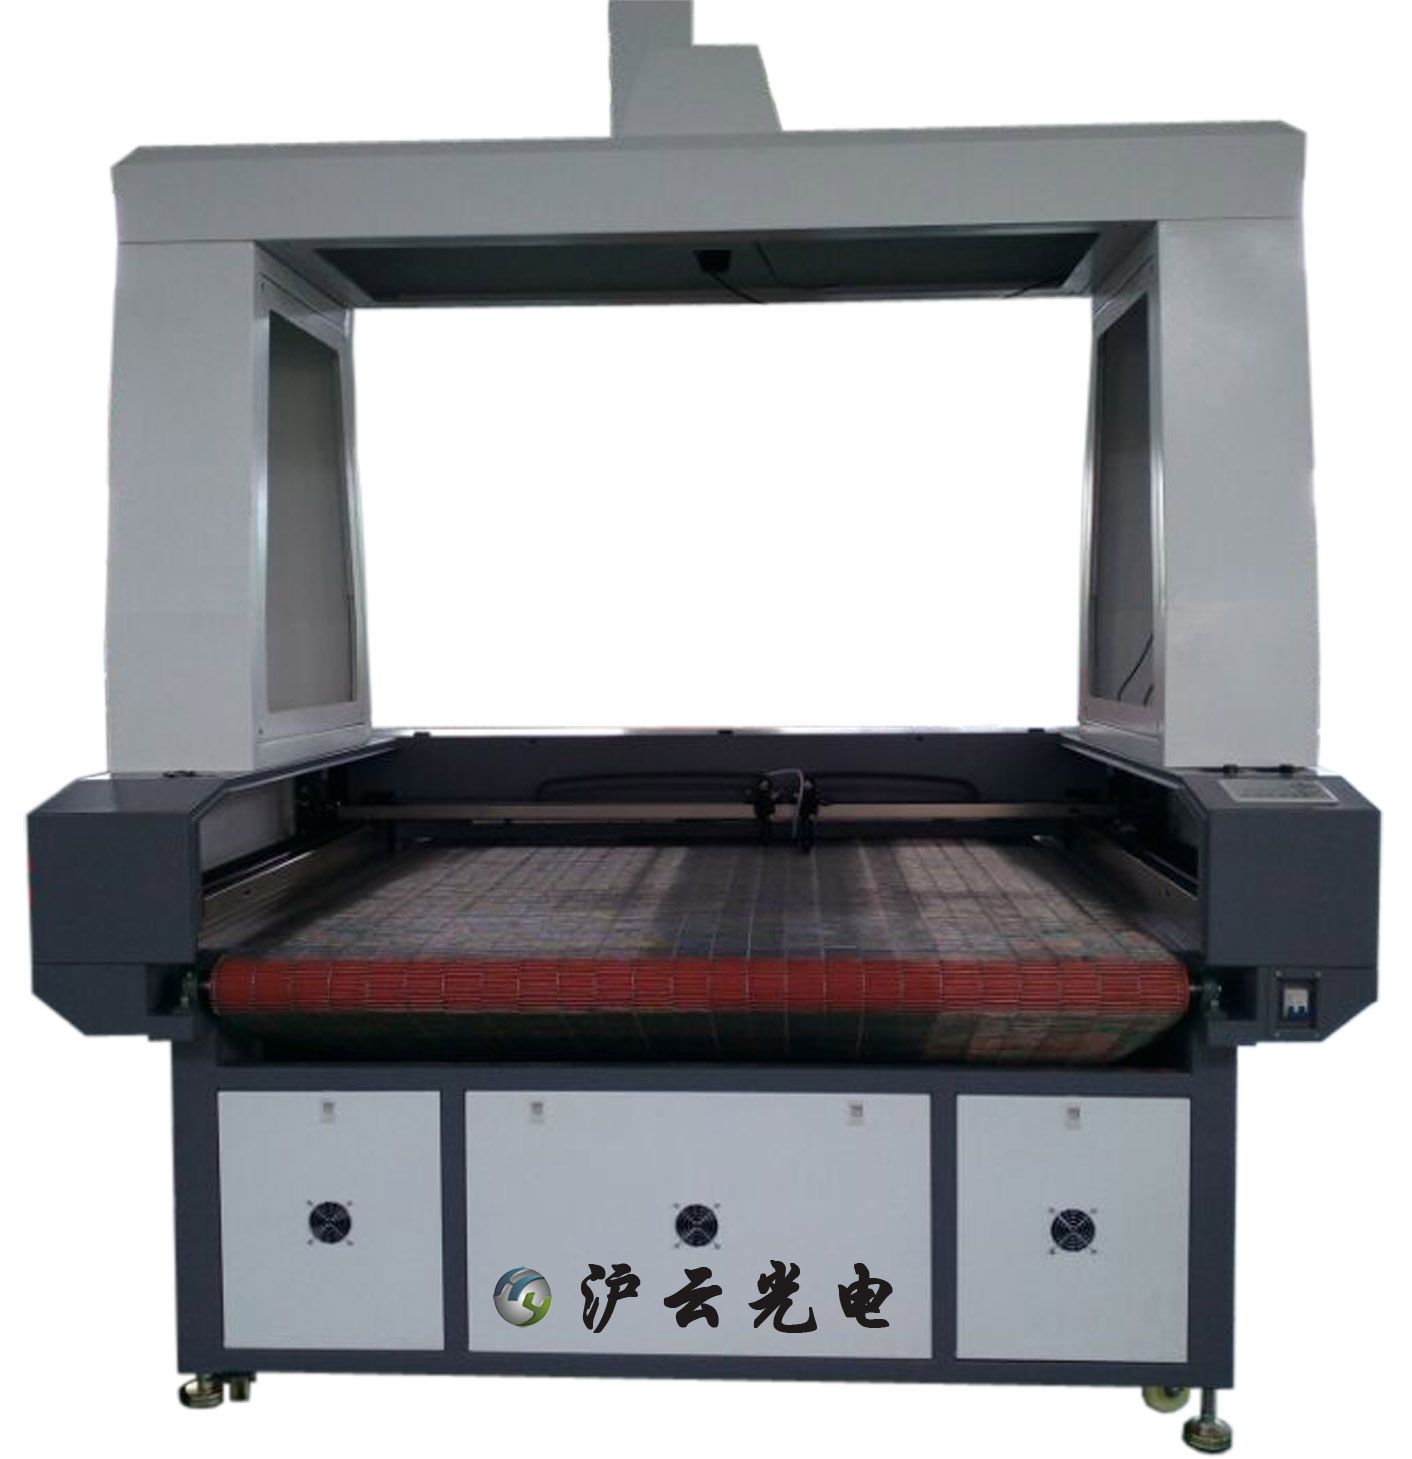 Vision positioning co2 laser cutting machine